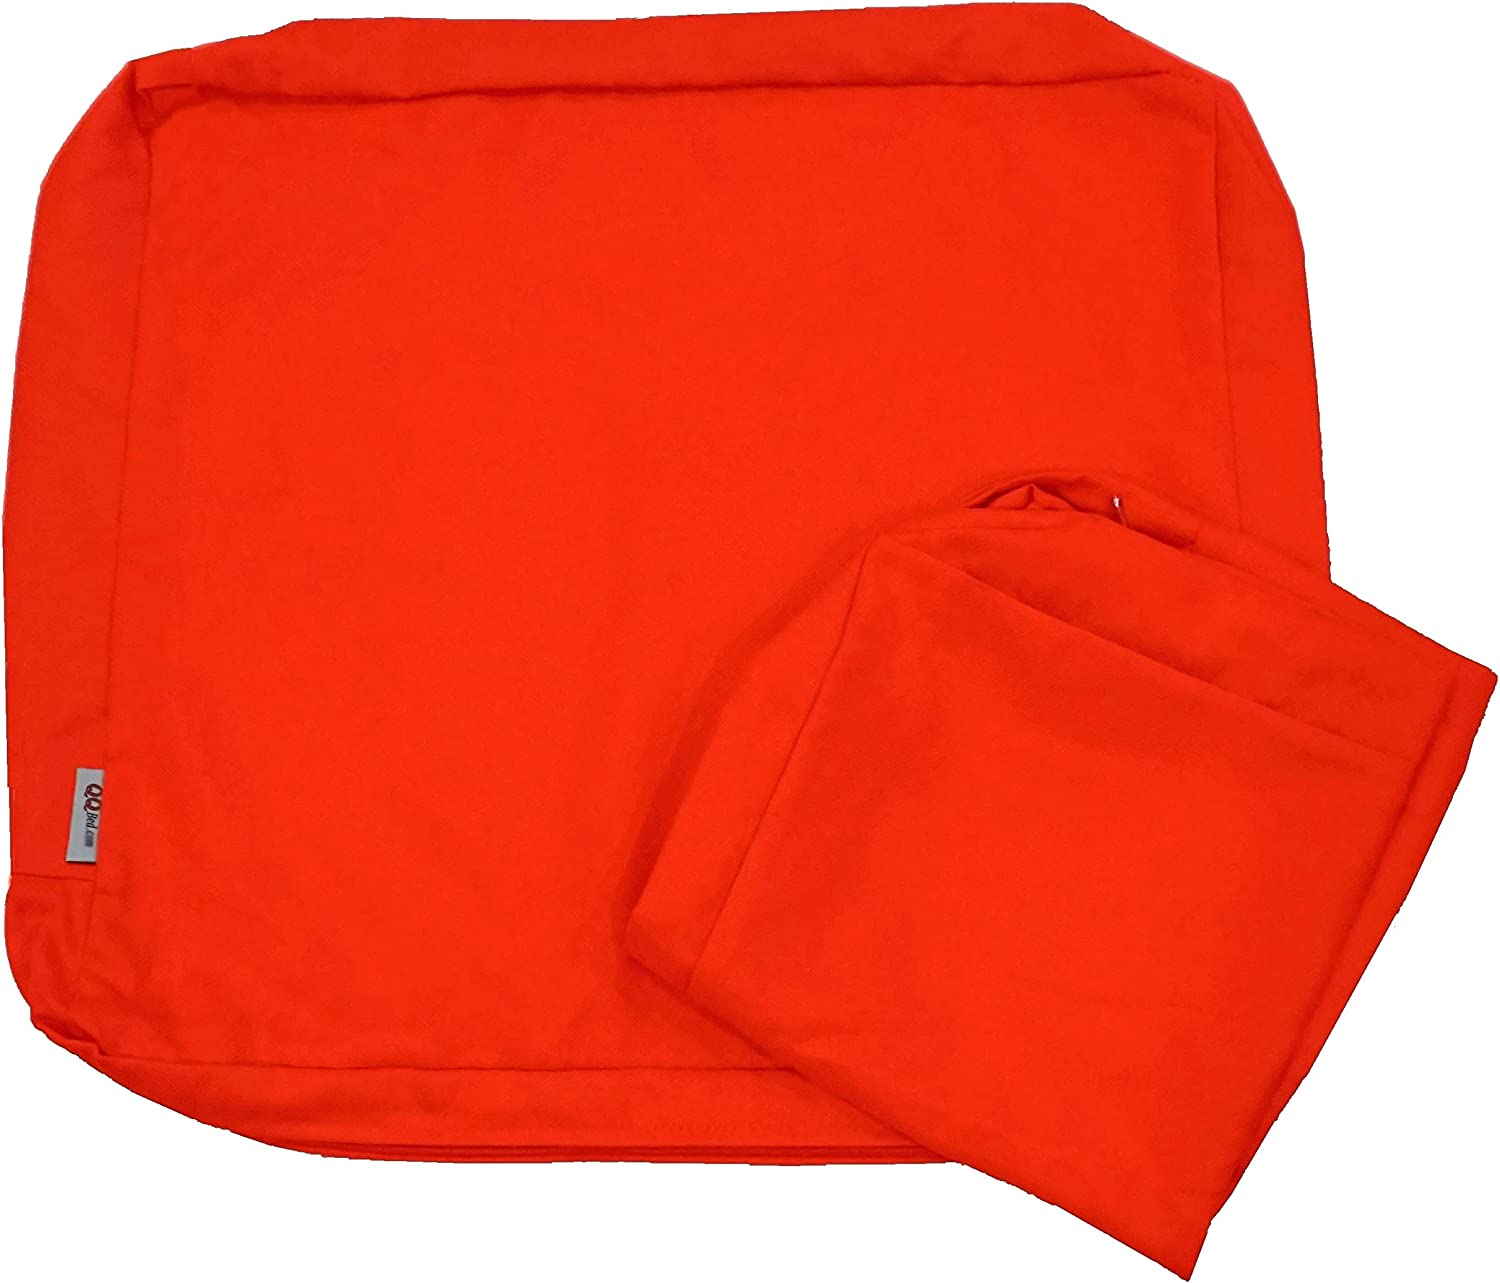 Qqbed 4 Pack Outdoor Patio Chair Washable Cushion Pillow Seat Covers Extra Large 24 X22 X4 Replacement Covers Only 24 X22 X4 4 Pack Tango Kitchen Dining